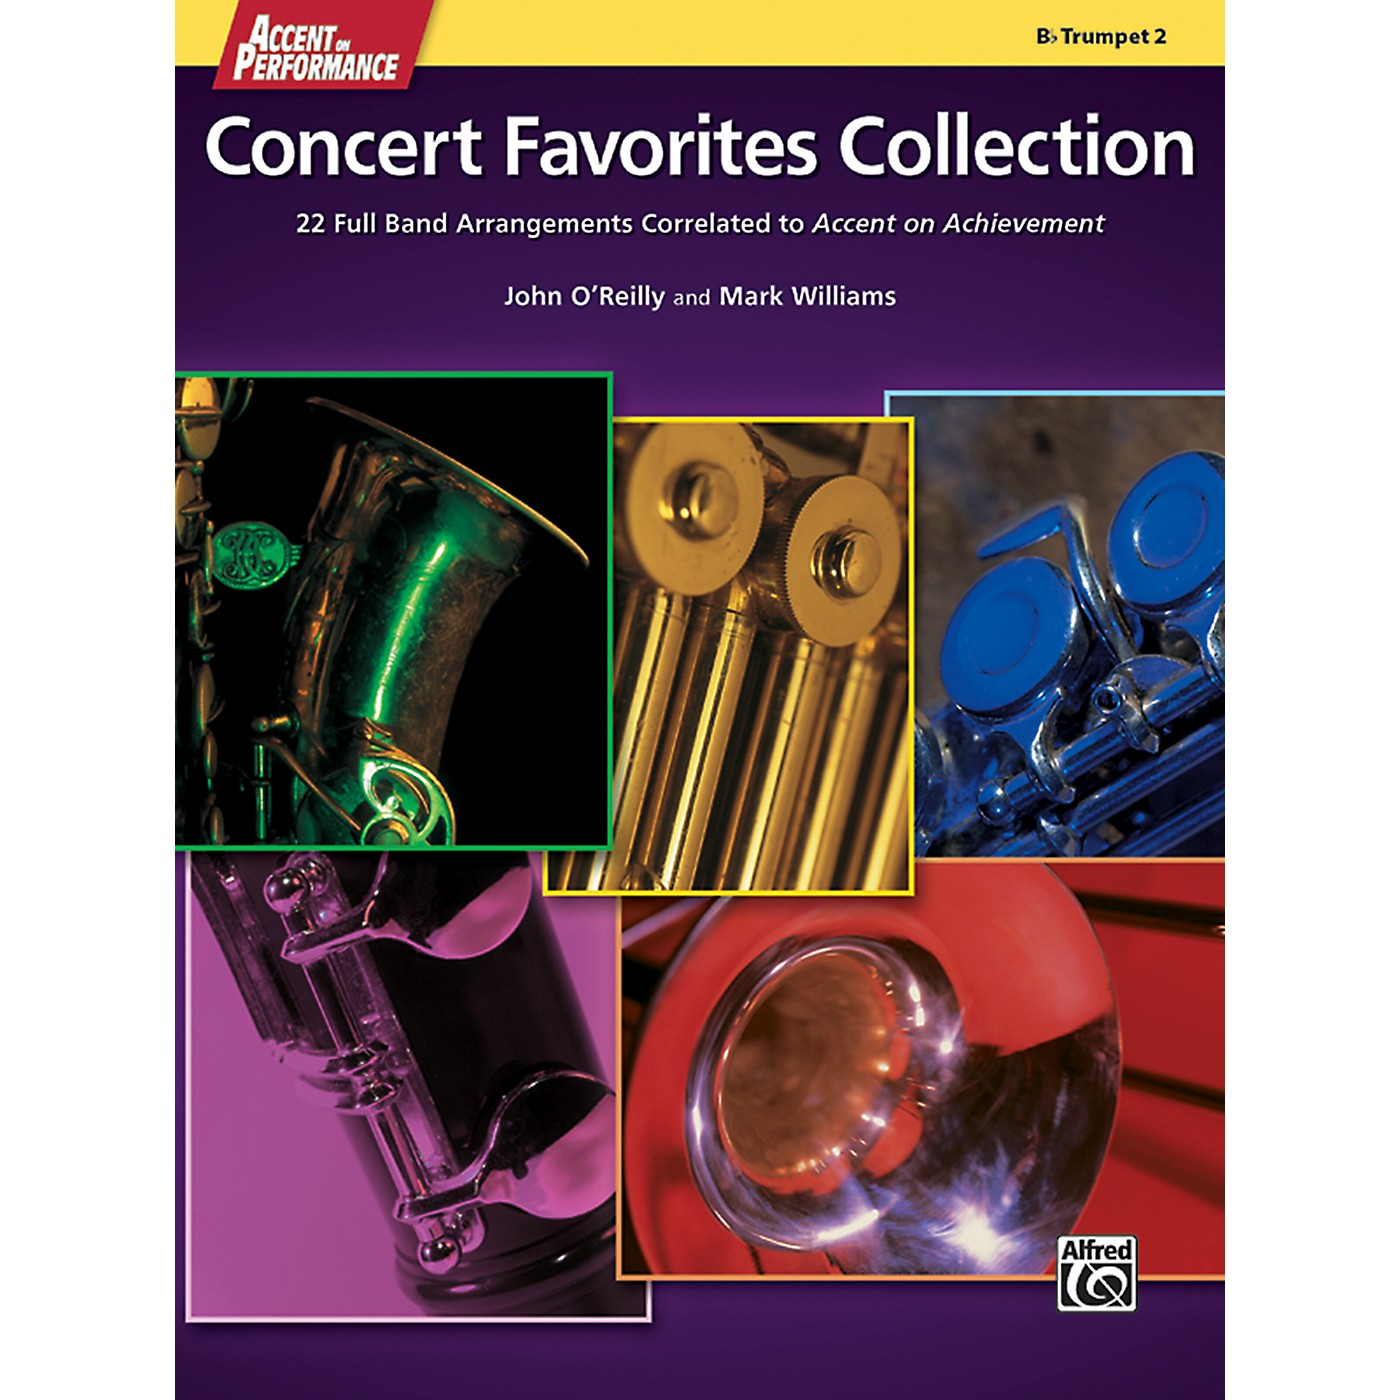 Alfred Accent on Performance Concert Favorites Collection Trumpet 2 Book thumbnail